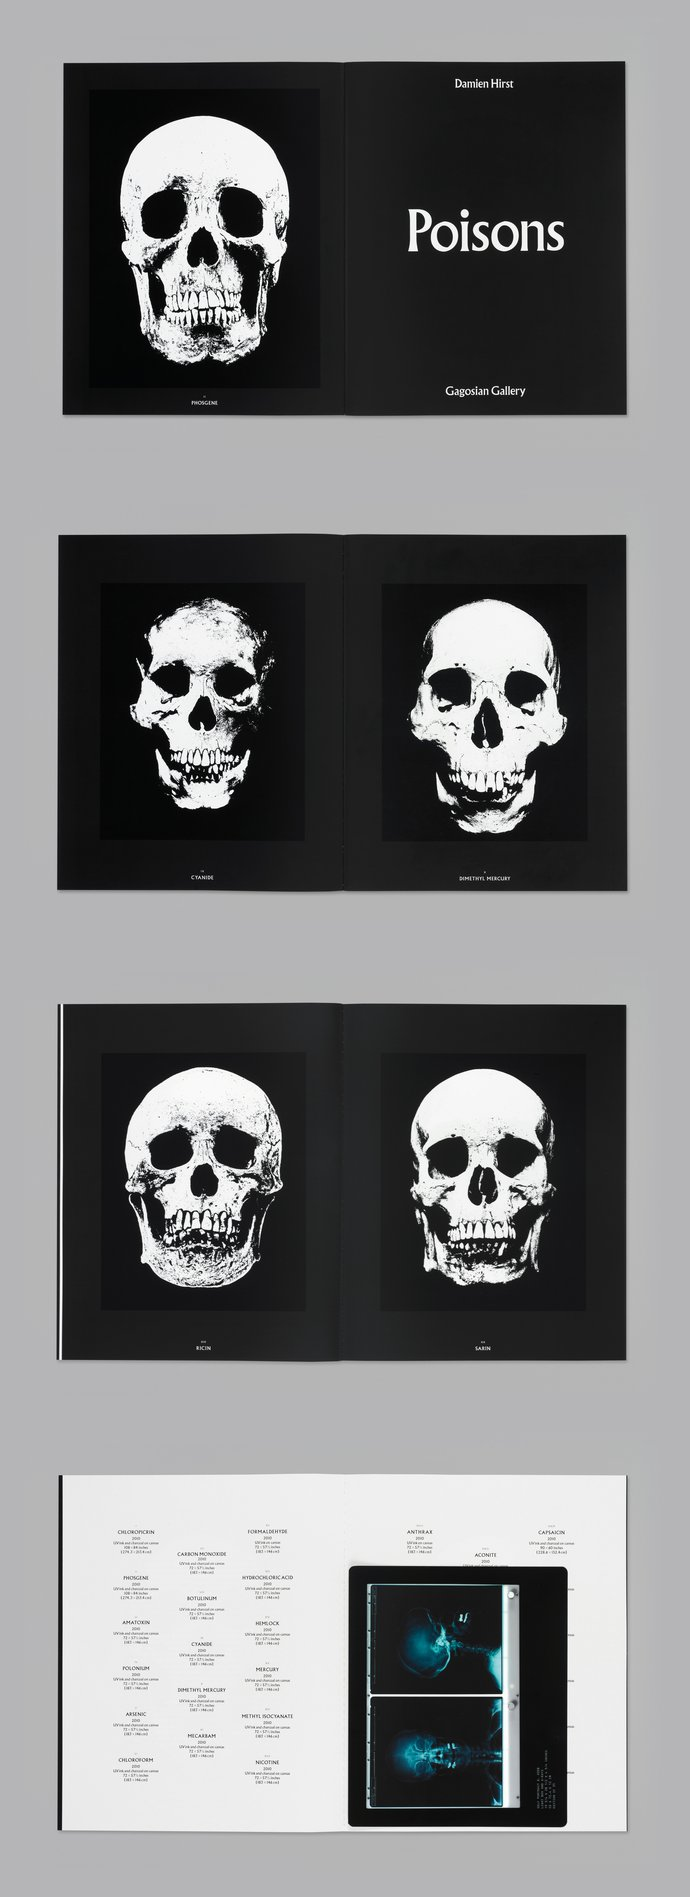 Gagosian – Damien Hirst: Poisons + Remedies, 2011 (Publication), image 4